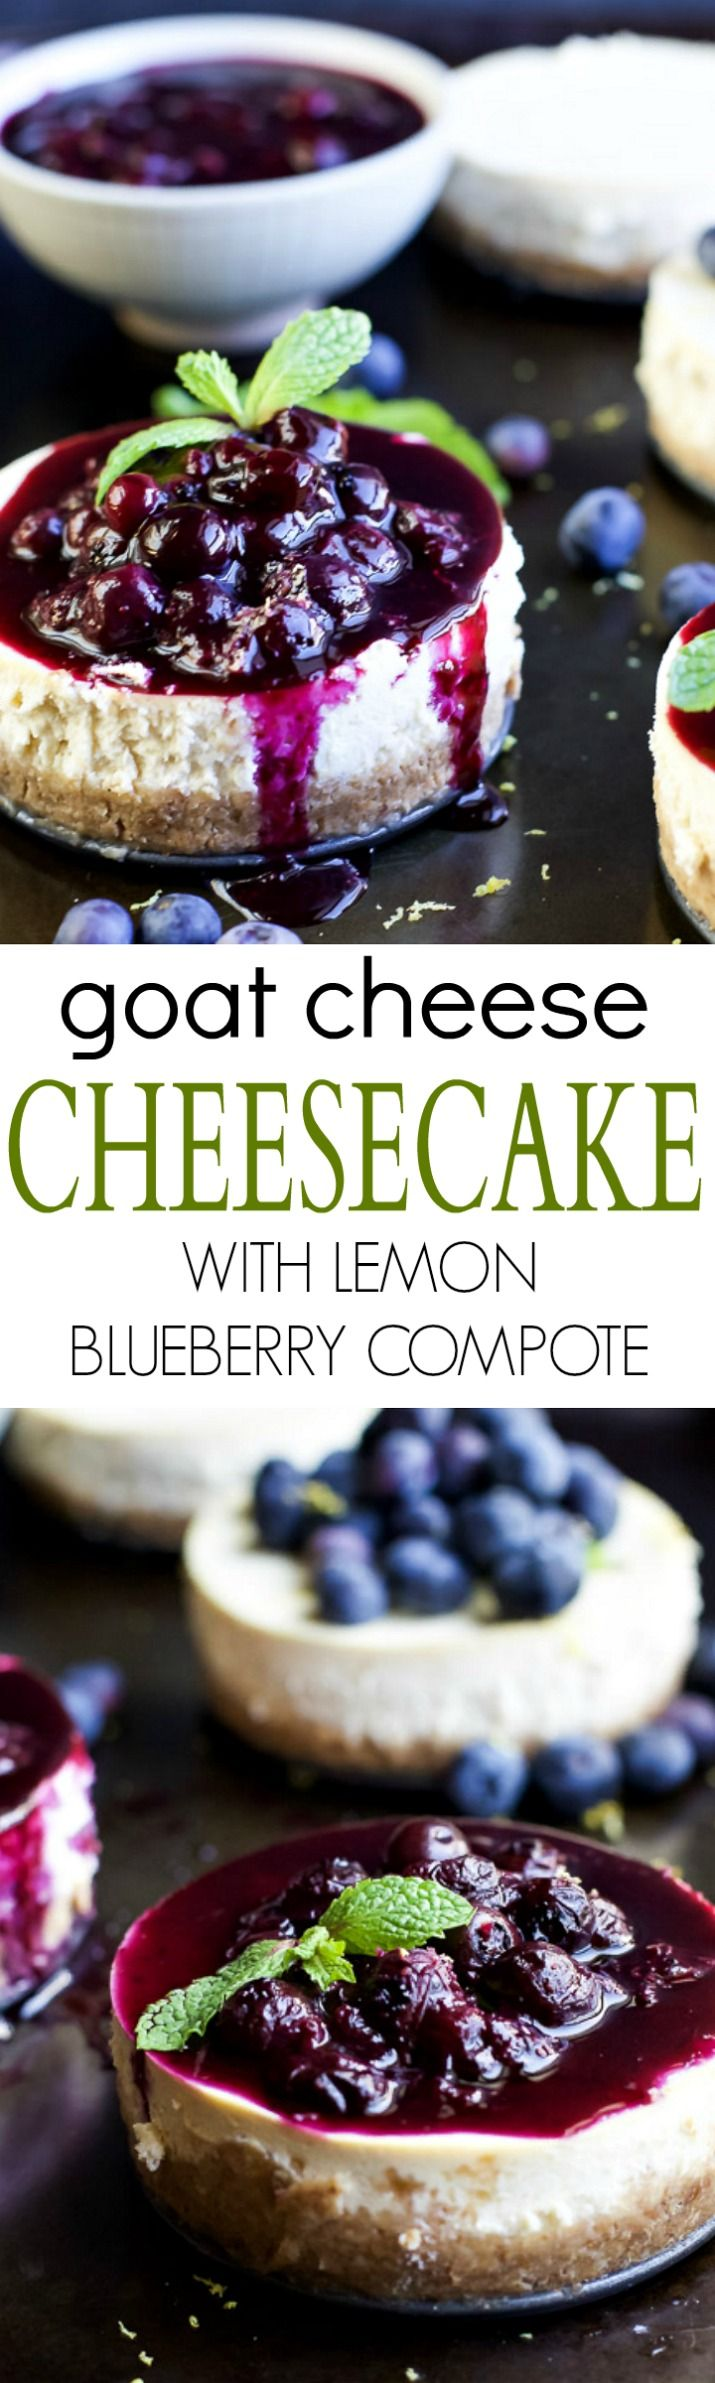 The dessert of your summer dreams! Mini Goat Cheese Cheesecake - it's fluffy, light, super creamy with a slight hint of lemon then topped with a homemade Lemon Blueberry Compote that will blow your mind! | joyfulhealthyeats.com